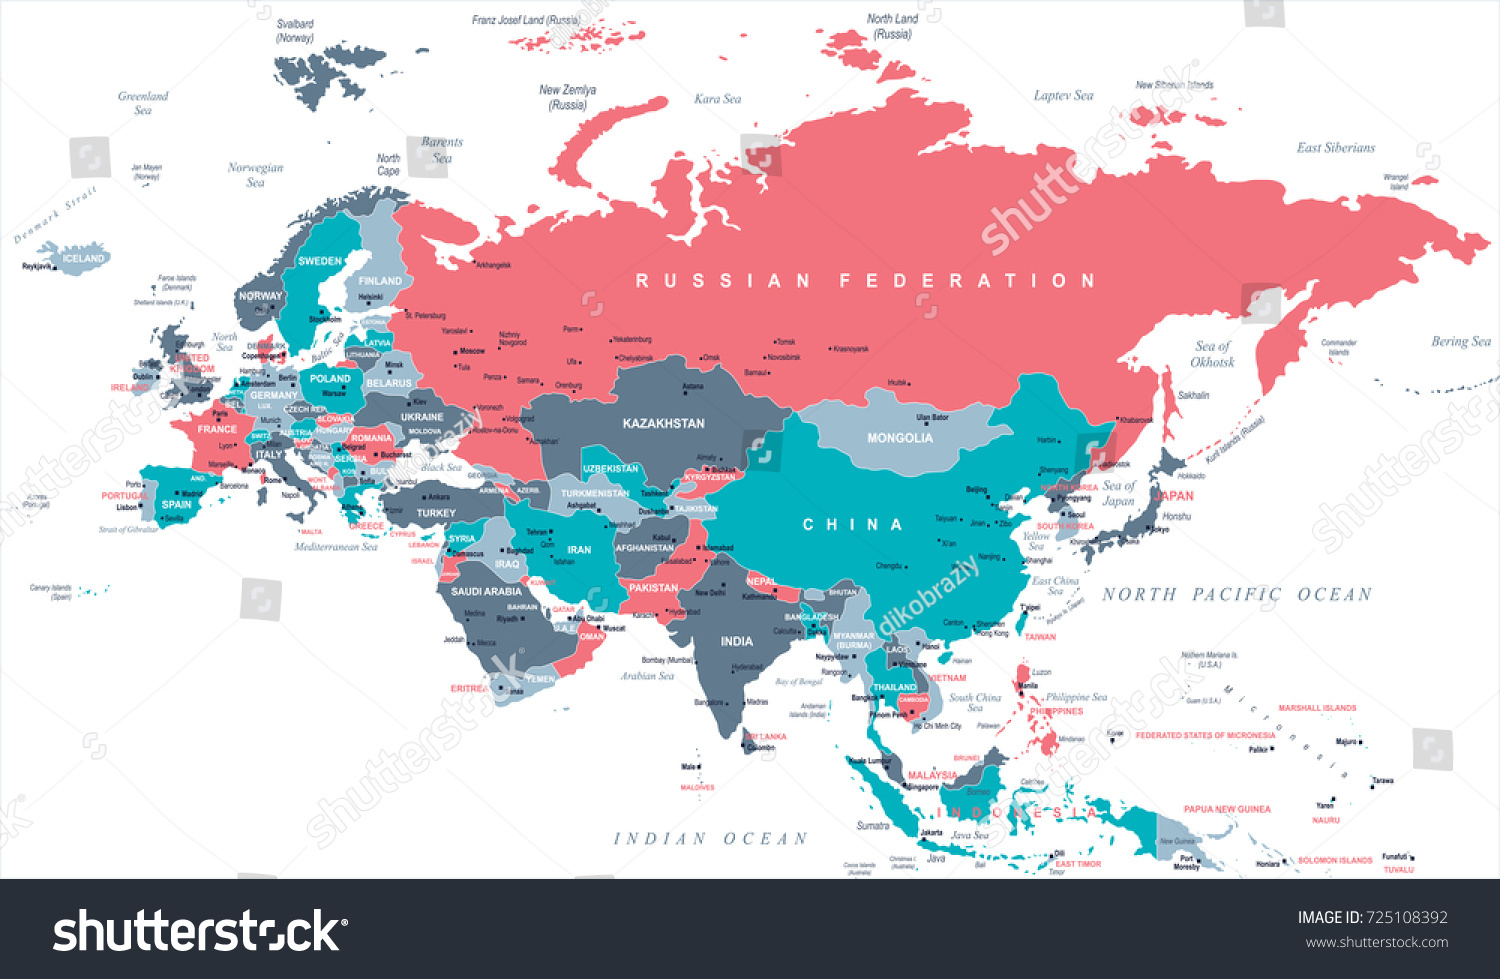 Eurasia europa russia china india indonesia vectores en stock eurasia europa russia china india indonesia thailand map detailed vector illustration gumiabroncs